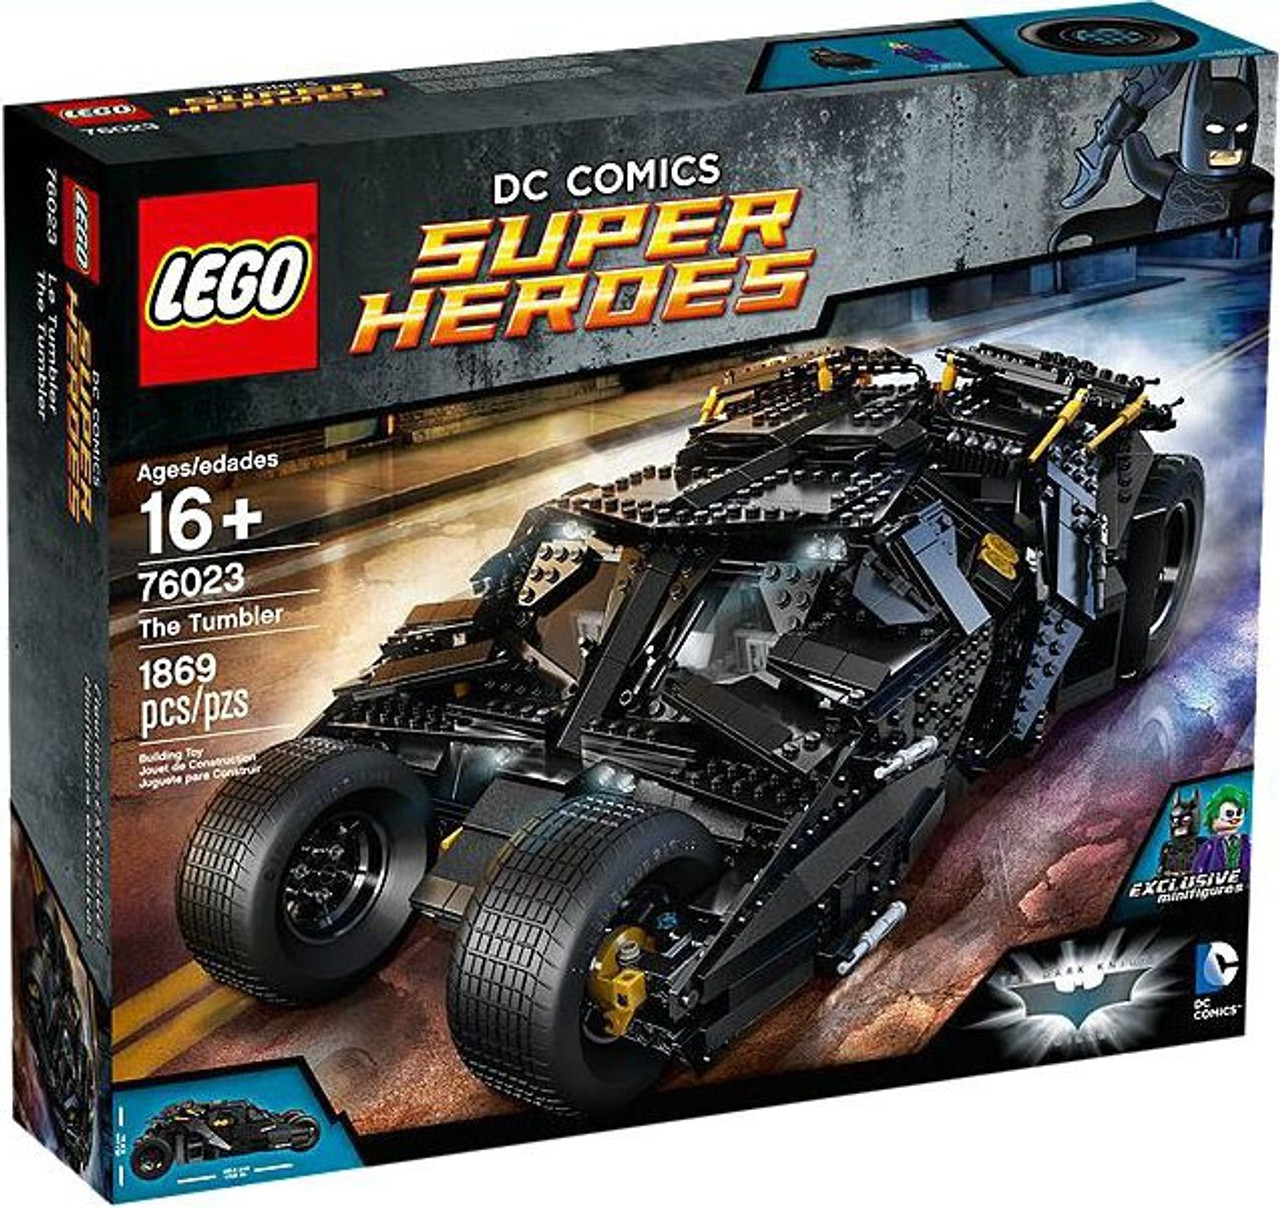 LEGO DC Super Heroes Batman Tumbler Set #76023